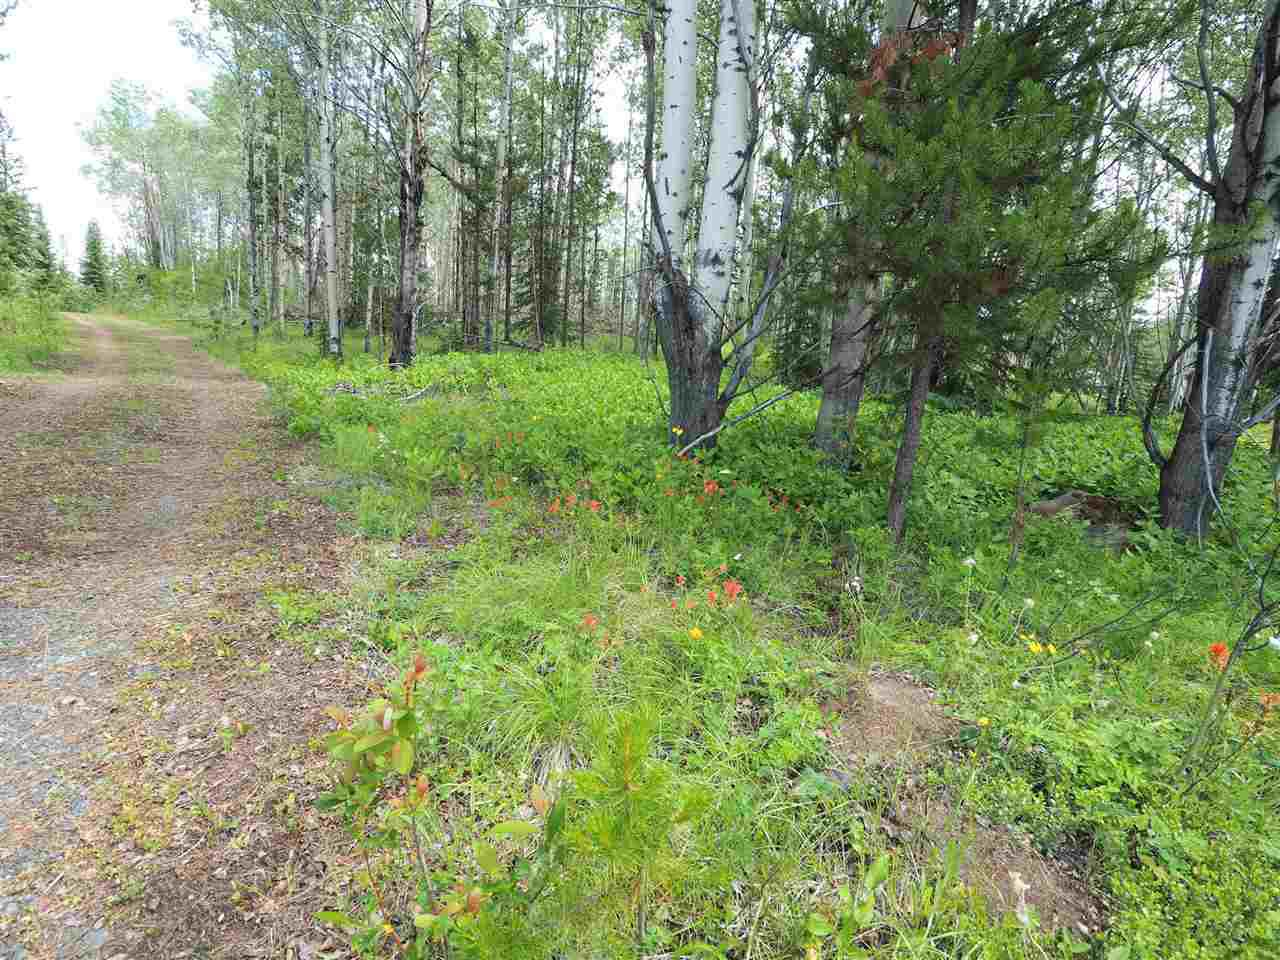 Photo 9: Photos: 5532 LITTLE FORT 24 Highway in Lone Butte: Lone Butte/Green Lk/Watch Lk Land for sale (100 Mile House (Zone 10))  : MLS®# R2419528